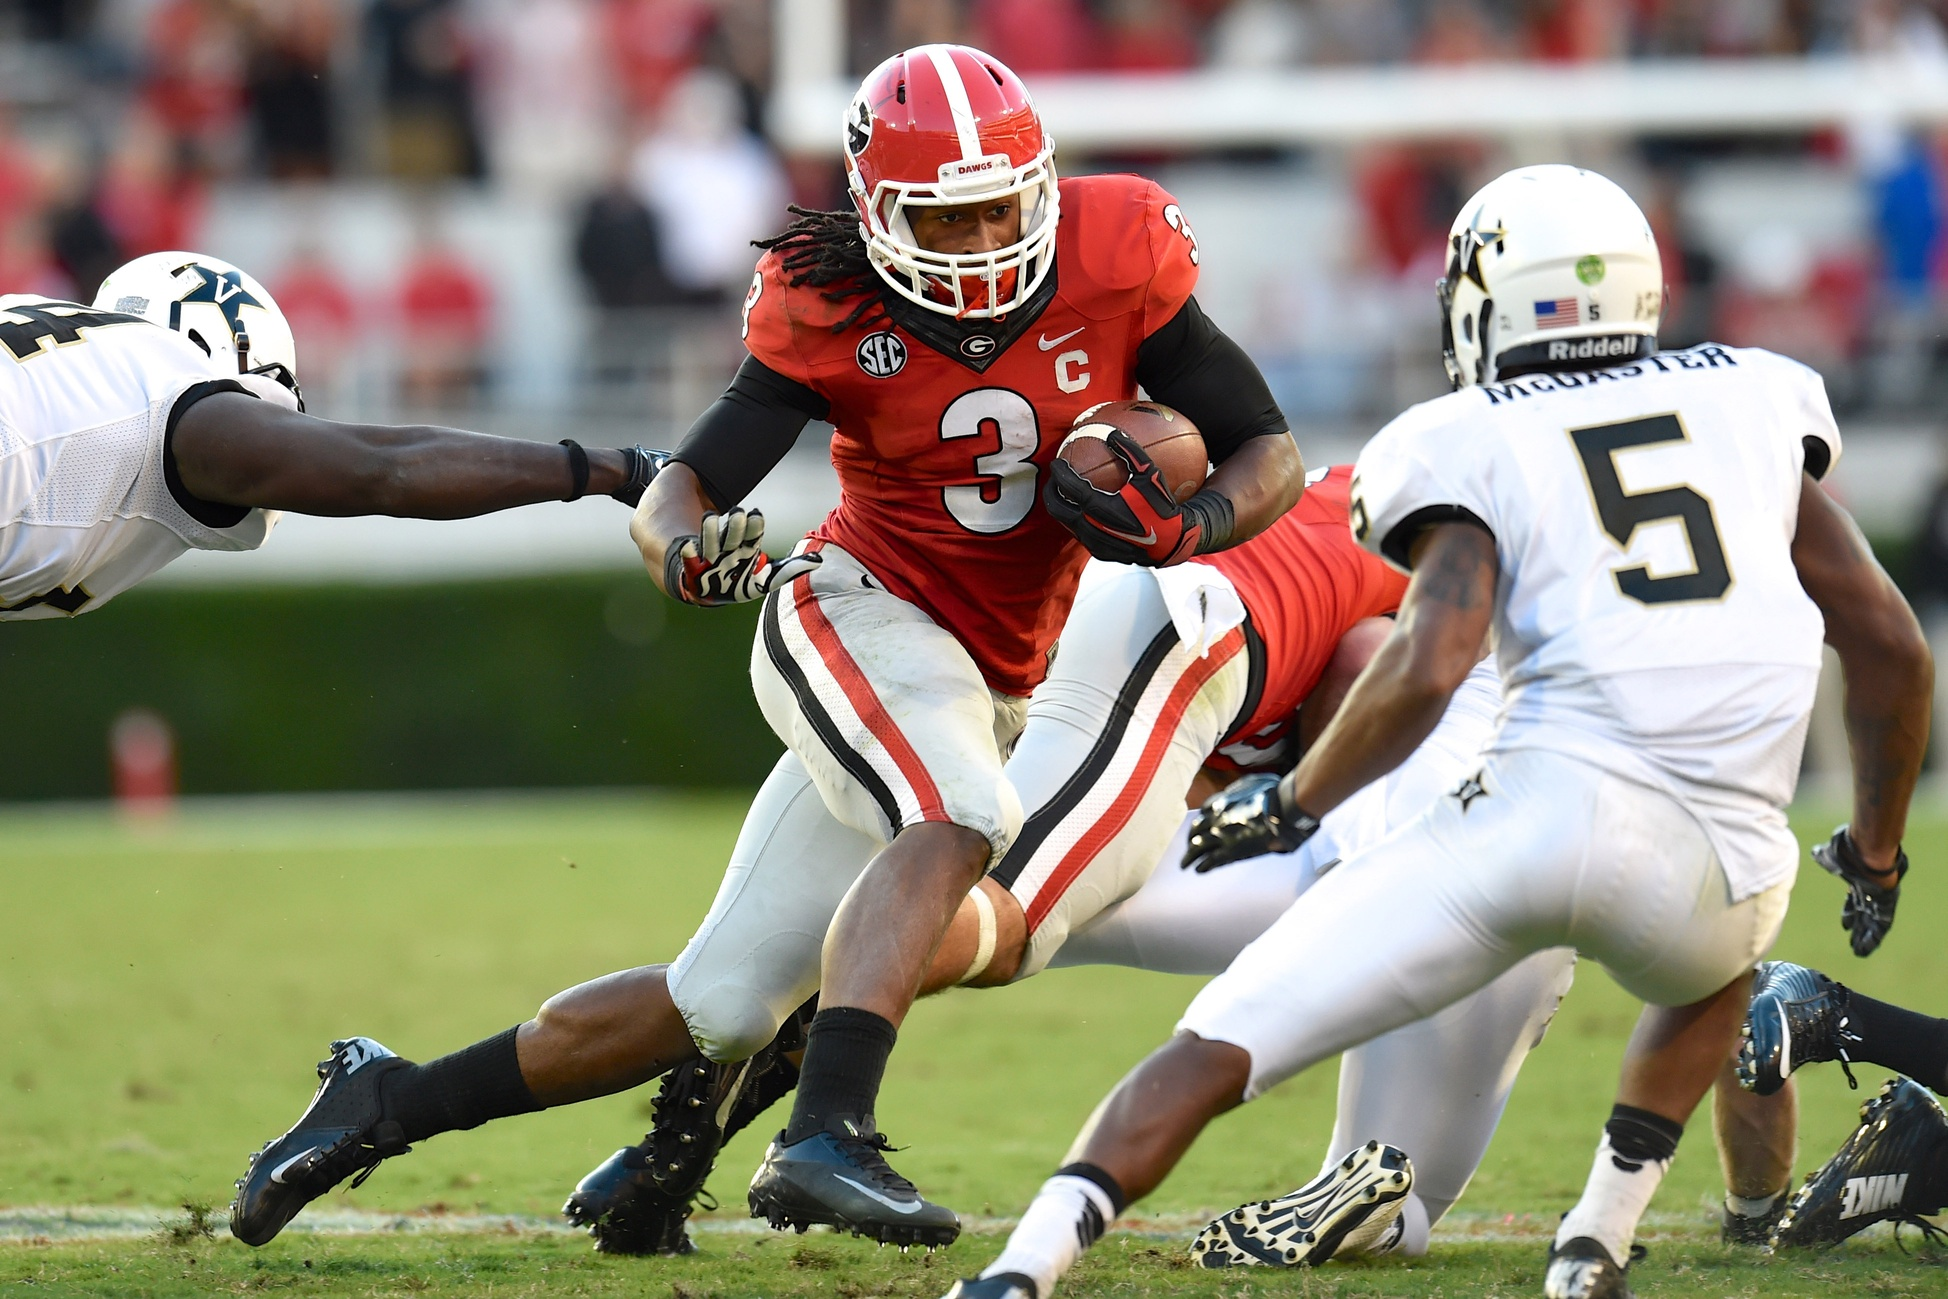 SB Nation turned down the Todd Gurley scoop